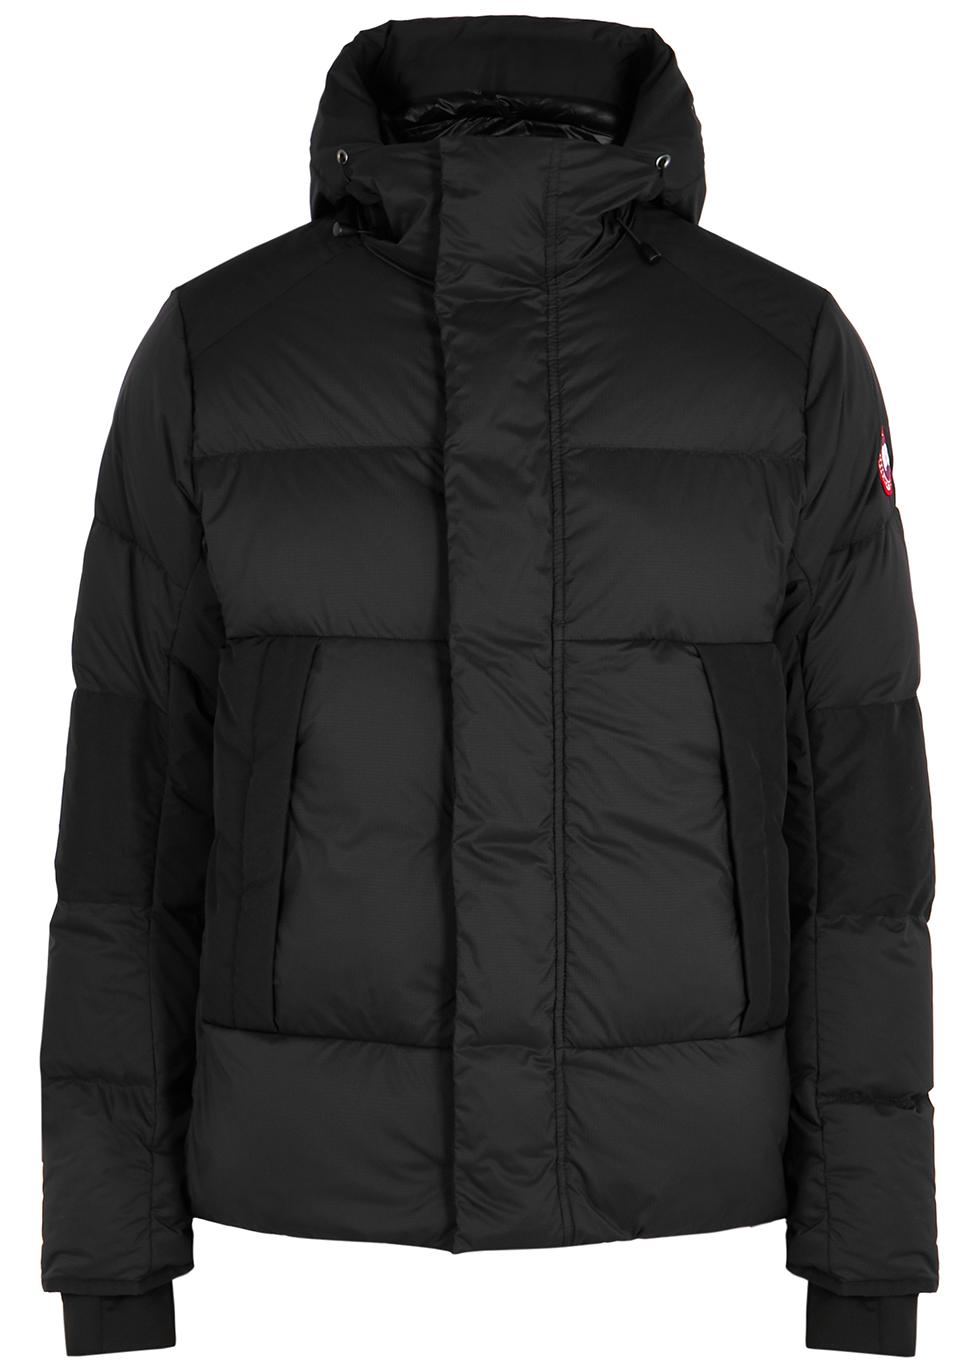 Armstrong quilted Feather-Light ripstop shell jacket